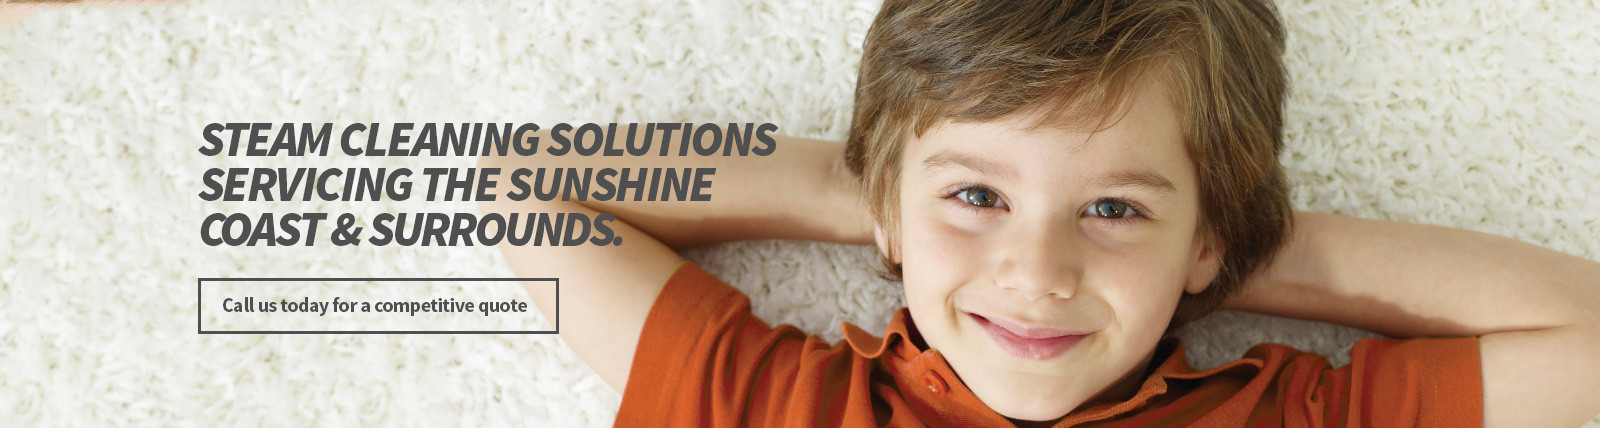 Carpet Cleaning - Sunshine Coast - New Life Cleaning - Steam Cleaning Solution Sweet Children